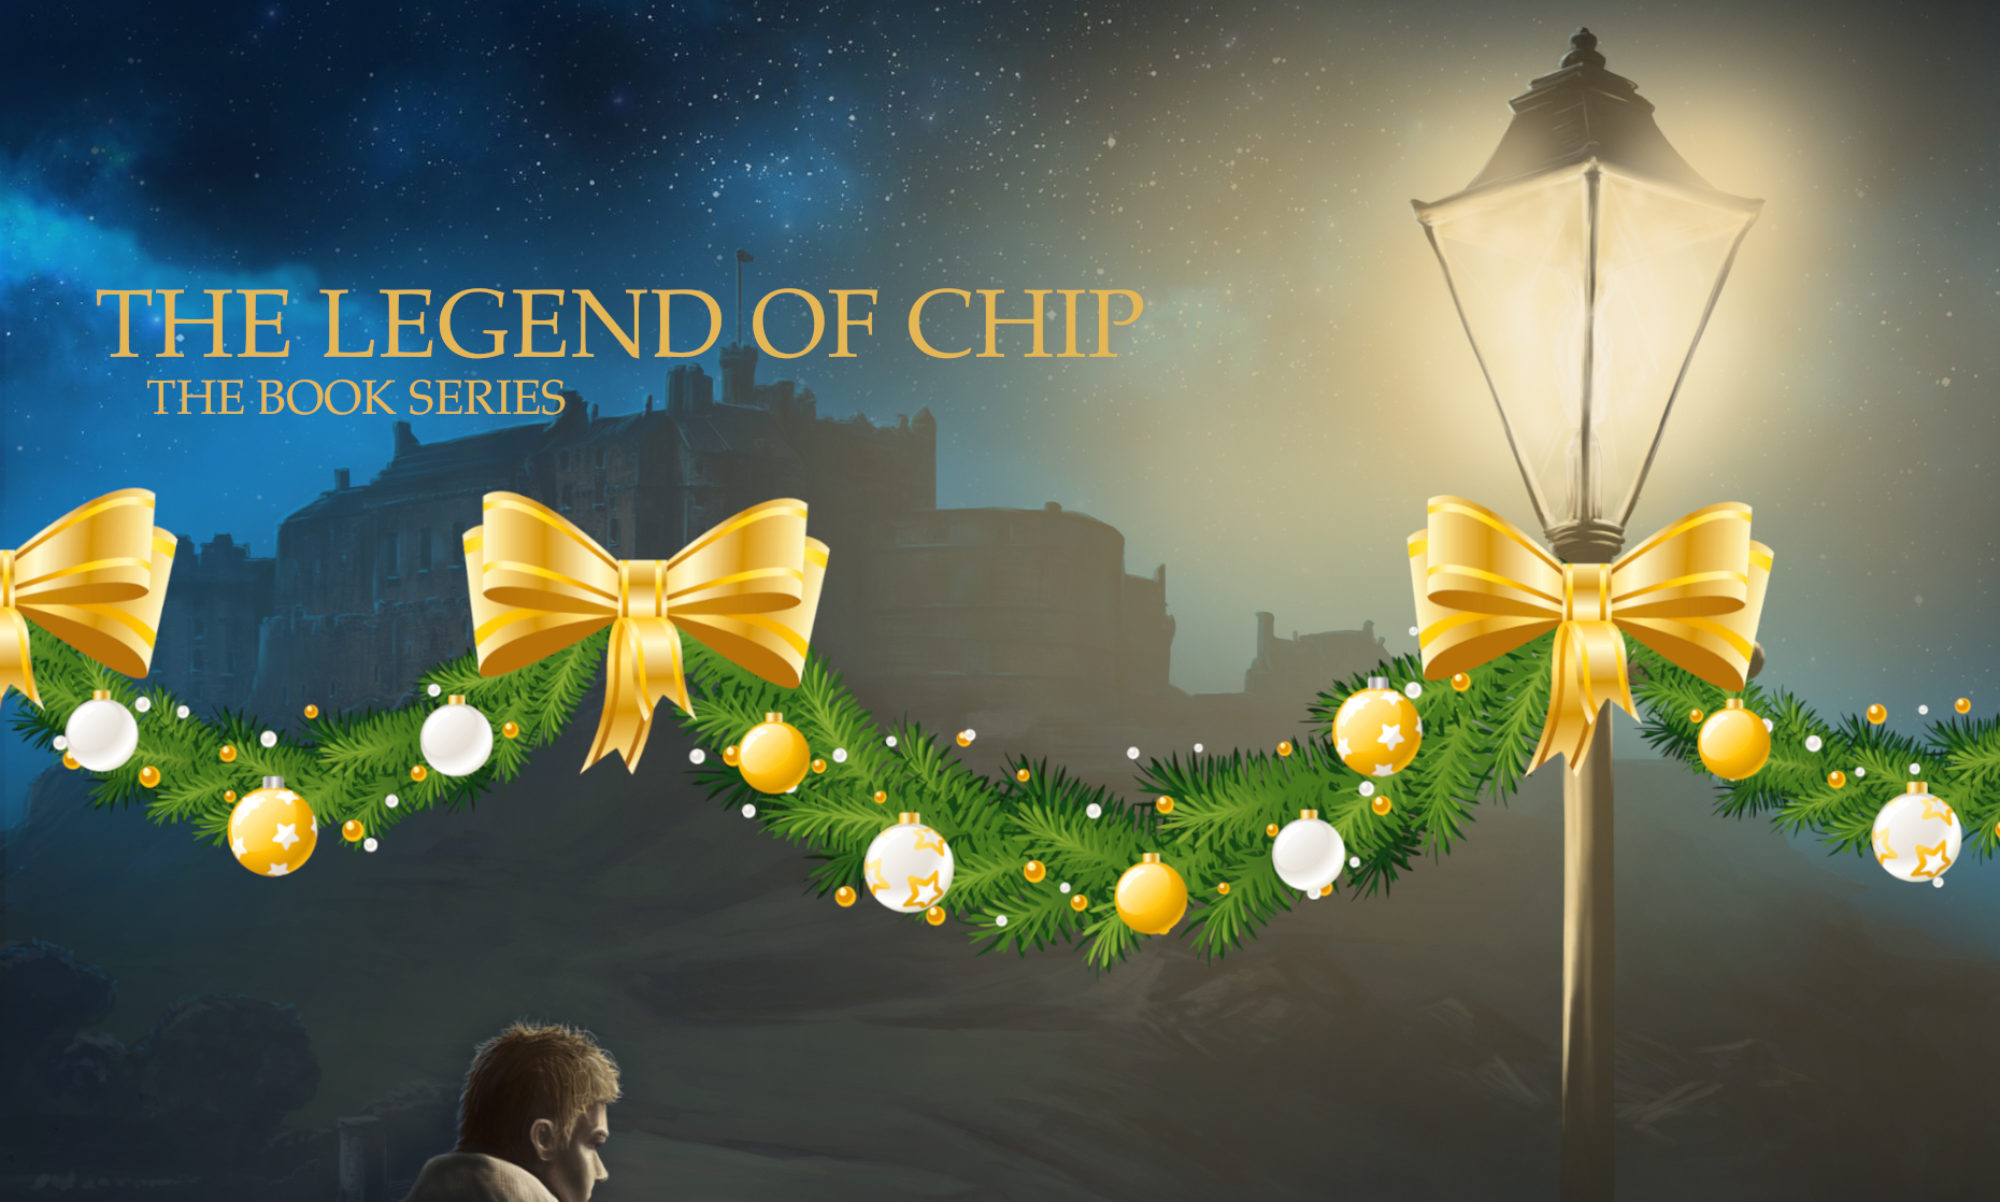 The Legend of Chip